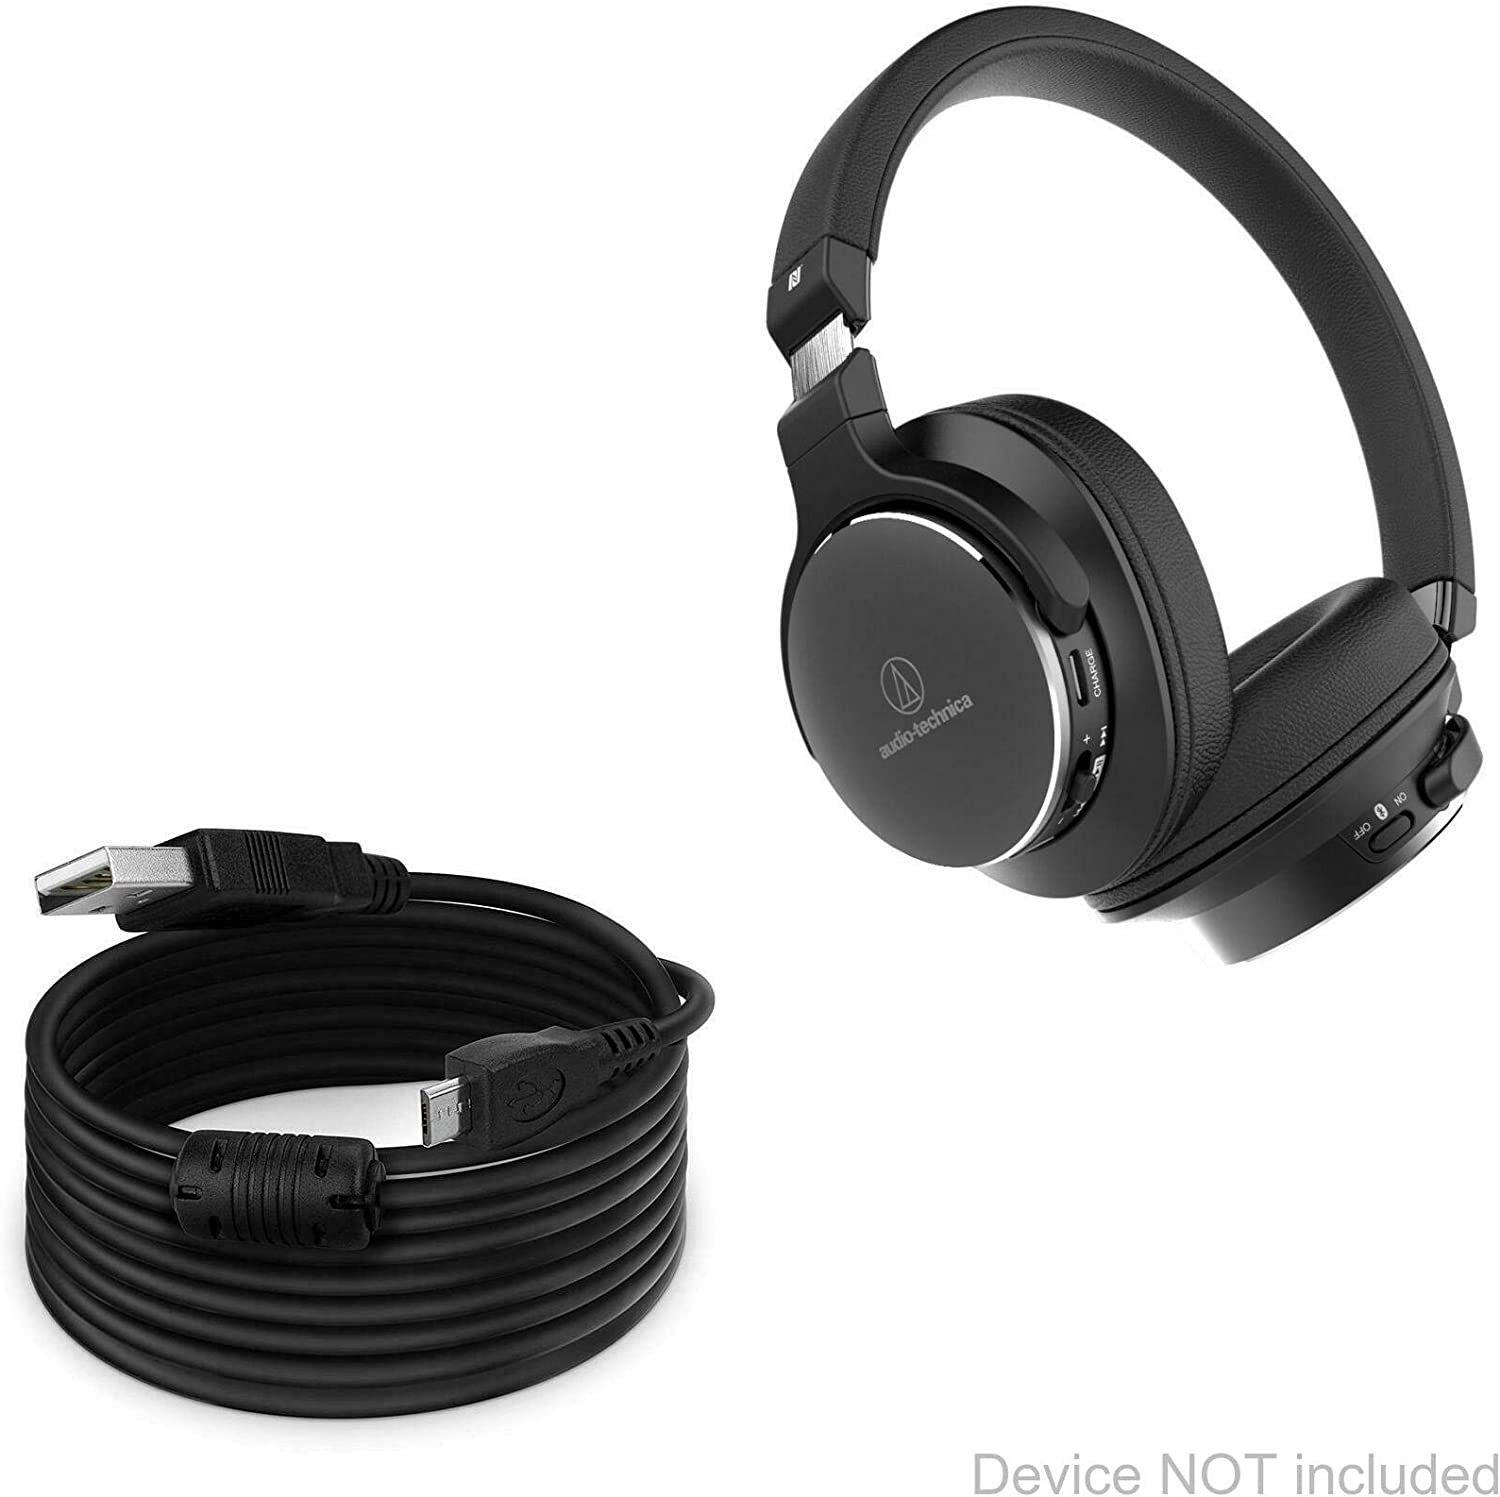 Cable Black BoxWave DirectSync Extra Long Charge and Sync Cable for Audio-Technica ATH-SR5BT 15 ft Audio-Technica ATH-SR5BT Cable